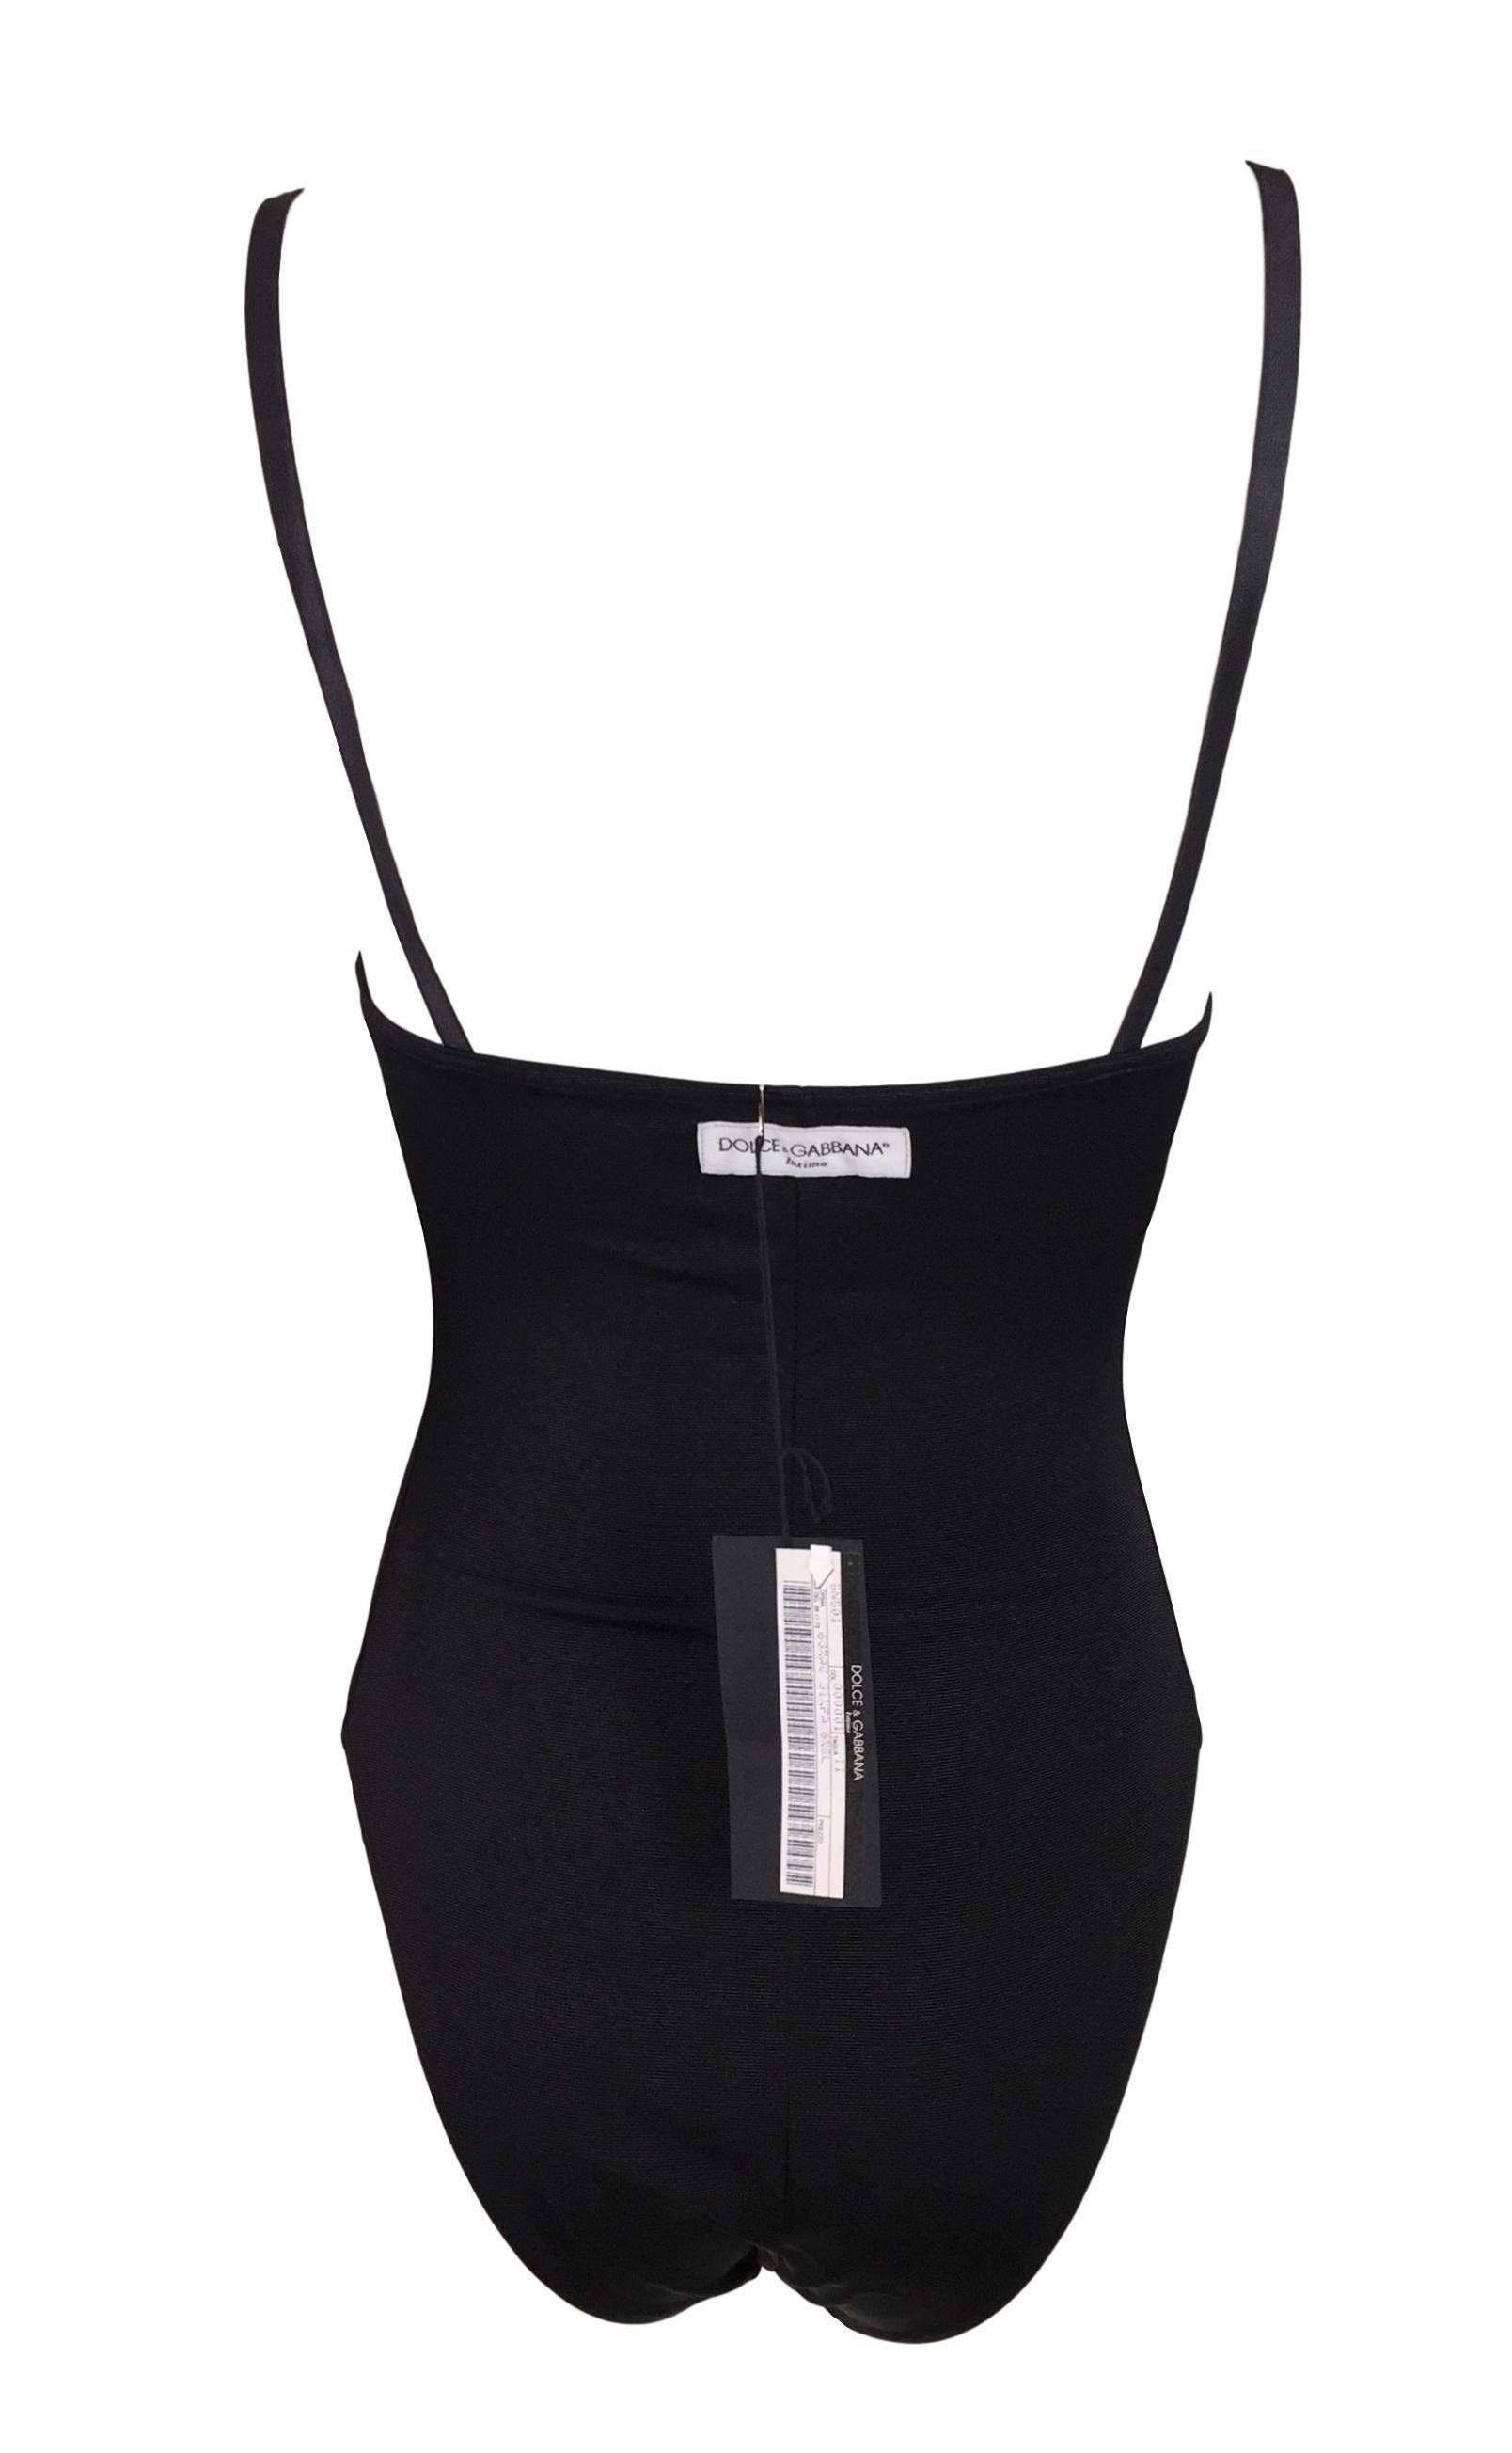 30507602a9 NWT 1990 s Dolce and Gabbana Black Corset Bodysuit Top at 1stdibs